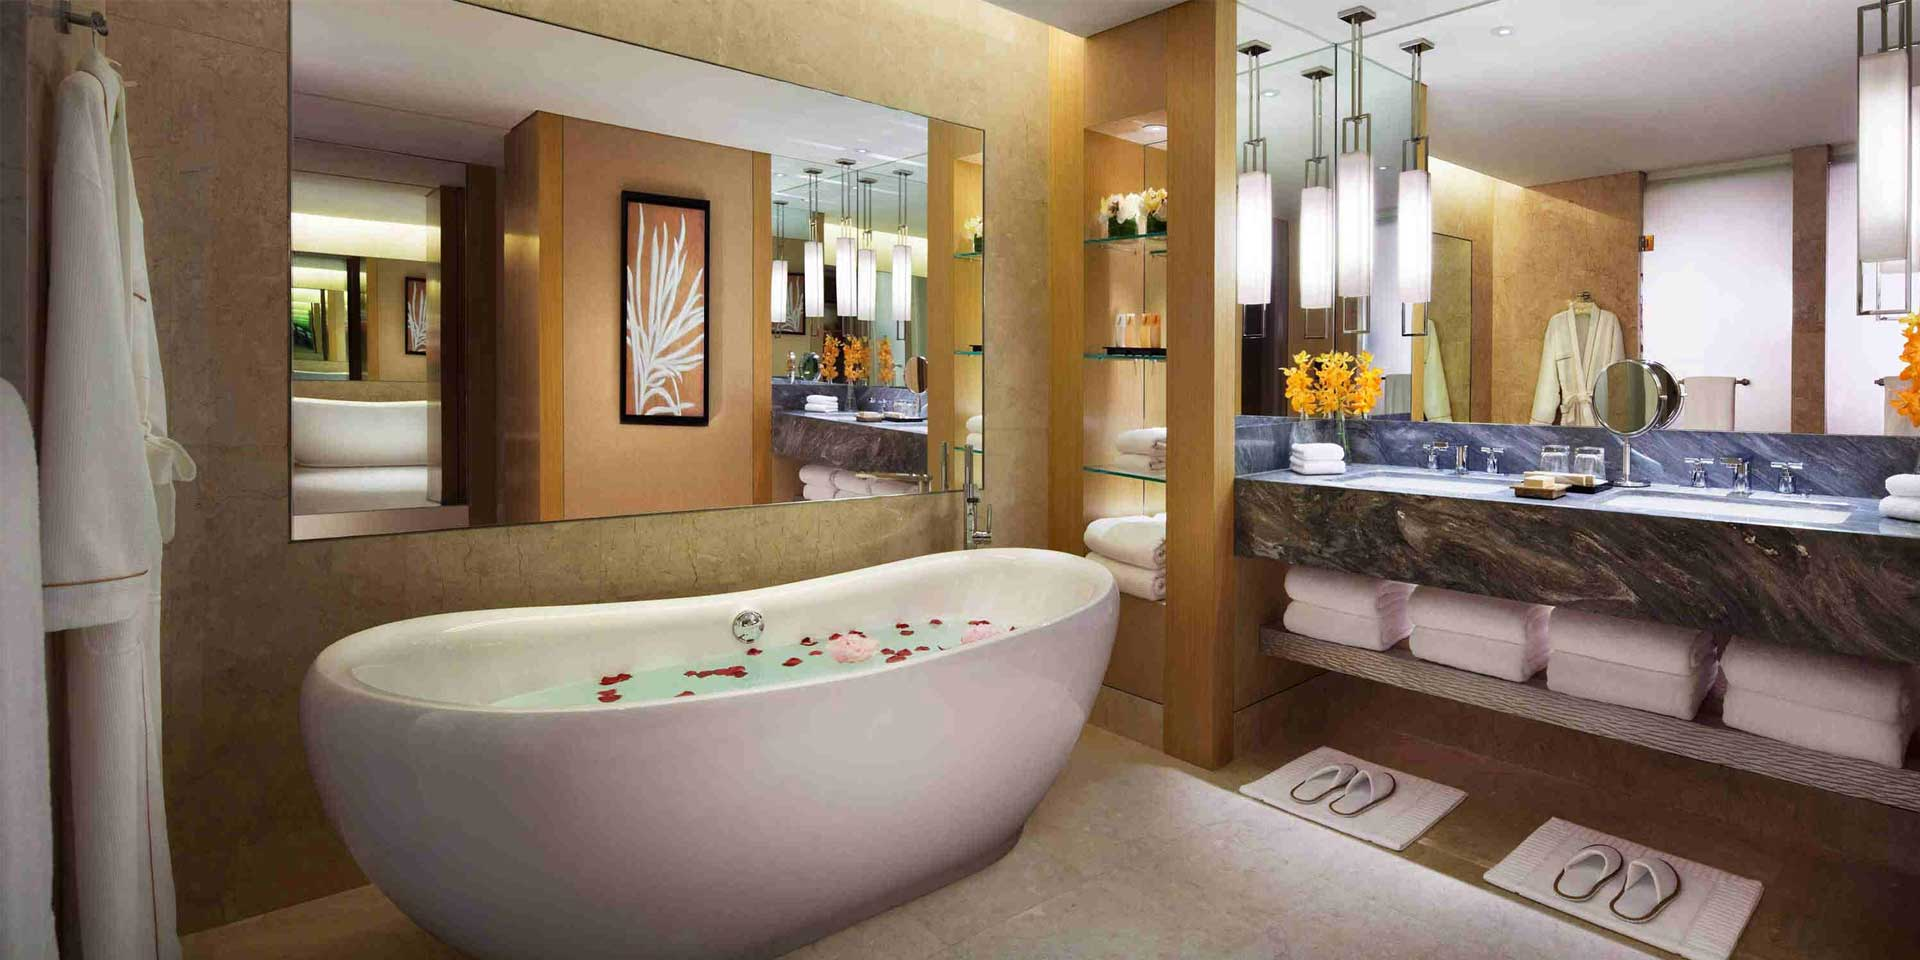 Orchid suite in marina bay sands singapore hotel for Bathroom in room